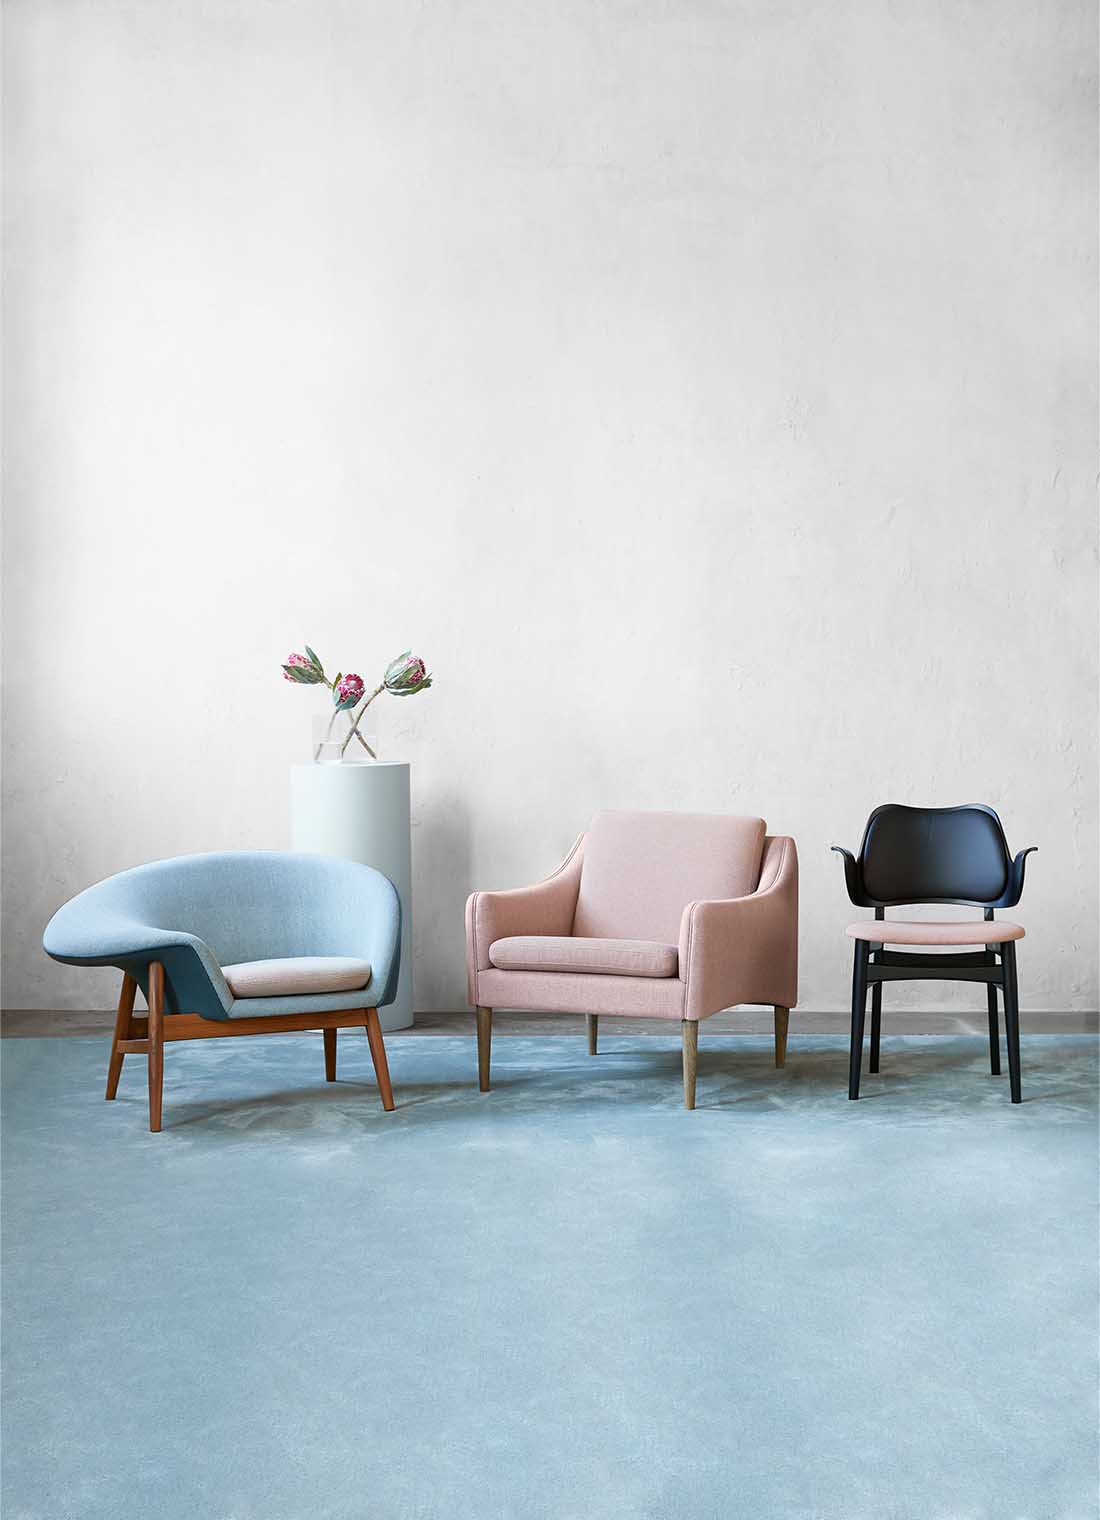 Mr. Olsen series of sustainable designs in pastel shades.